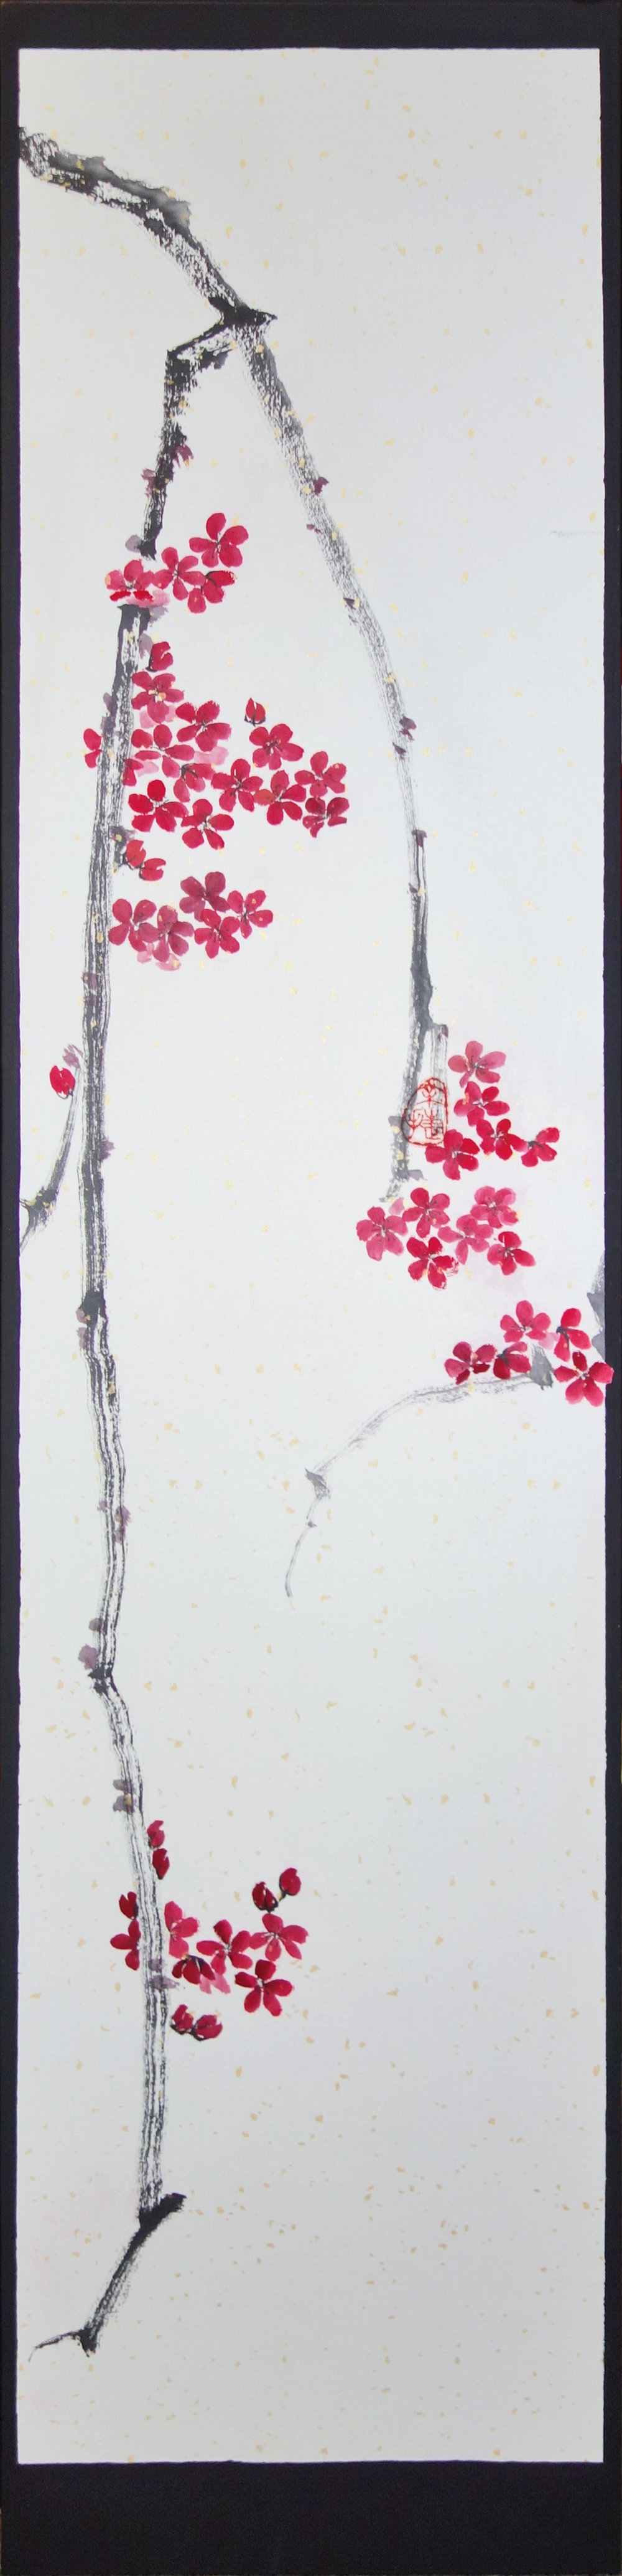 Spring, 58 x 14 x 1.5 inches